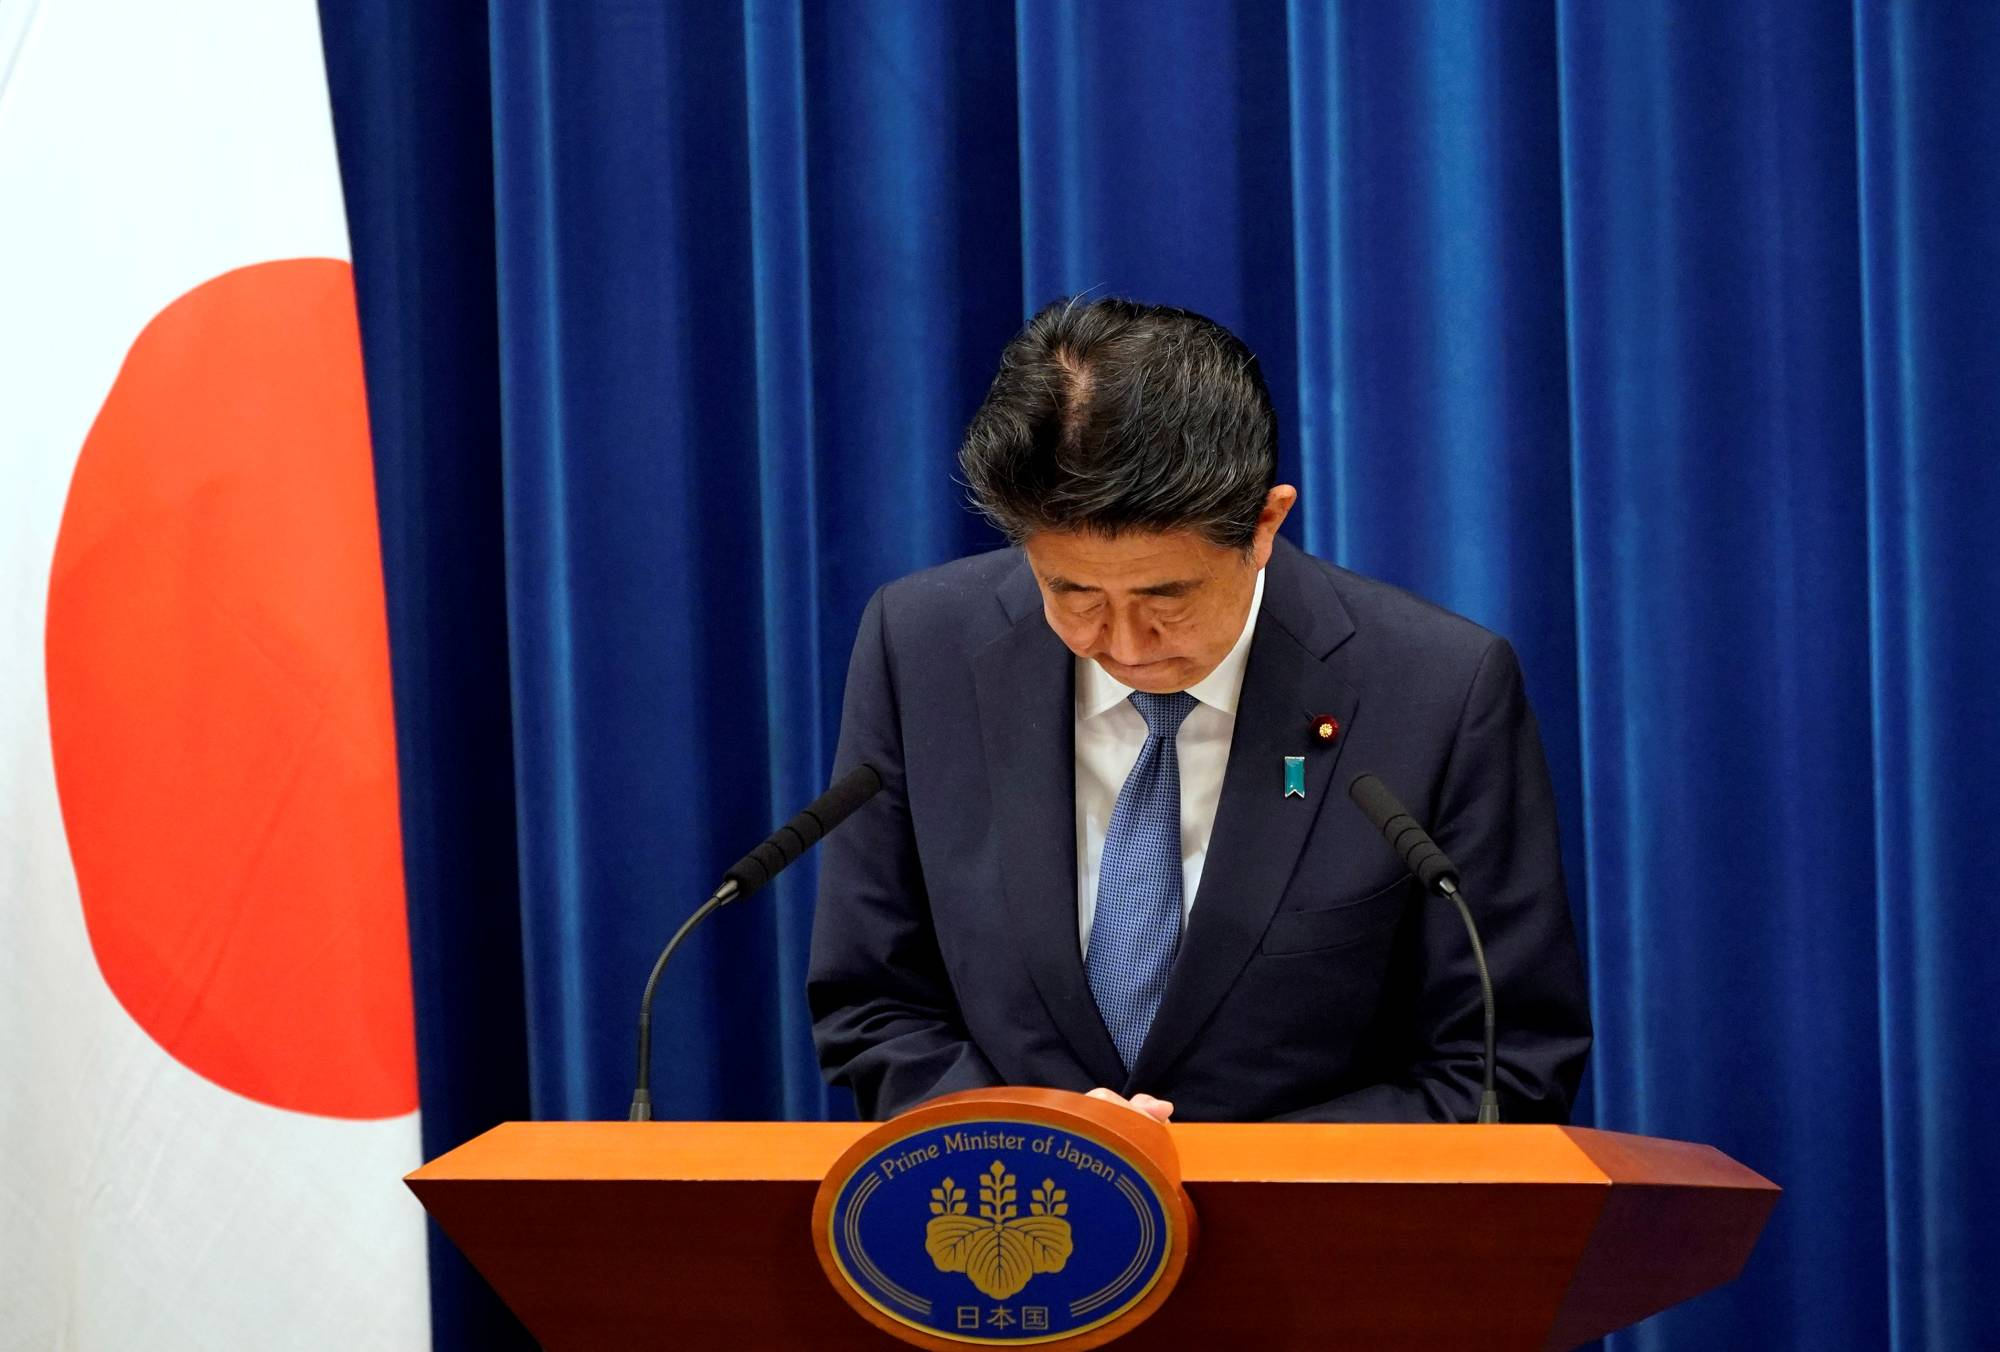 Prime Minister Shinzo Abe bows during a news conference at the Prime Minister's Office in Tokyo on Friday, during which he announced his intention to step down. | POOL / VIA REUTERS